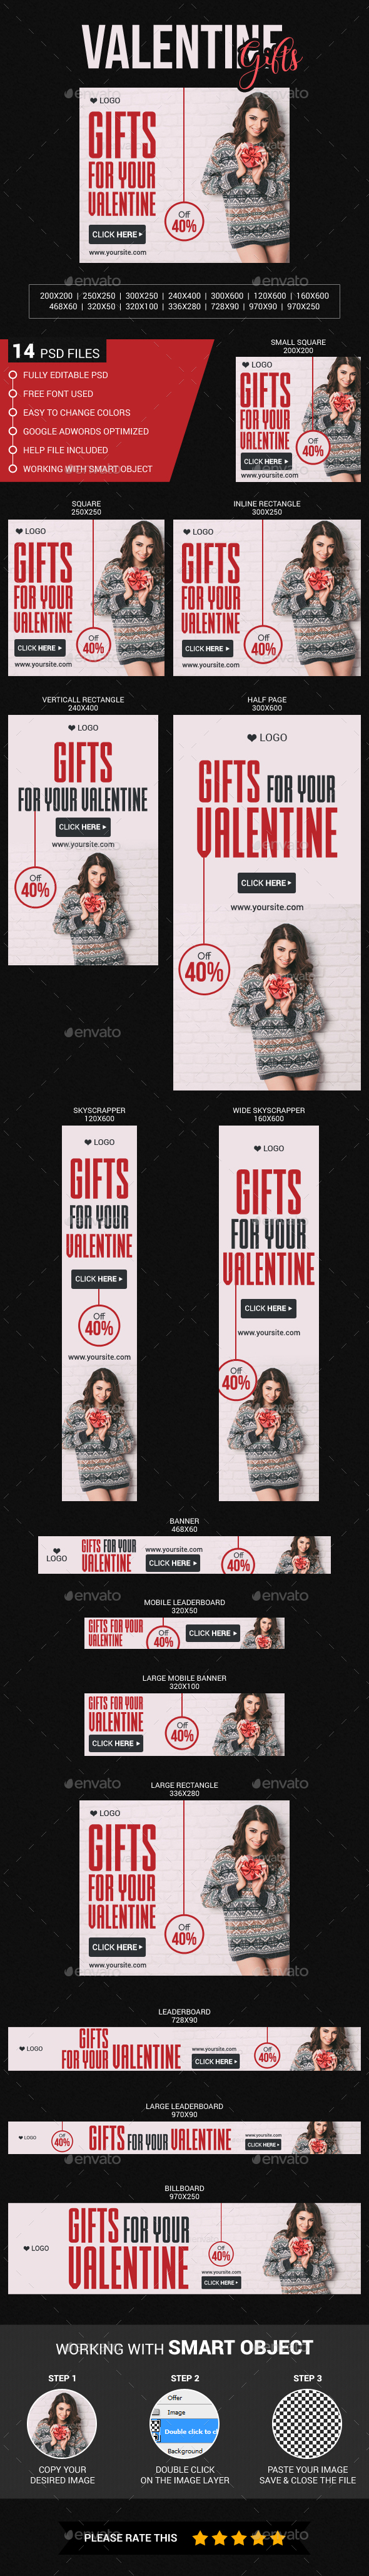 Valentine Gifts - Banners & Ads Web Elements